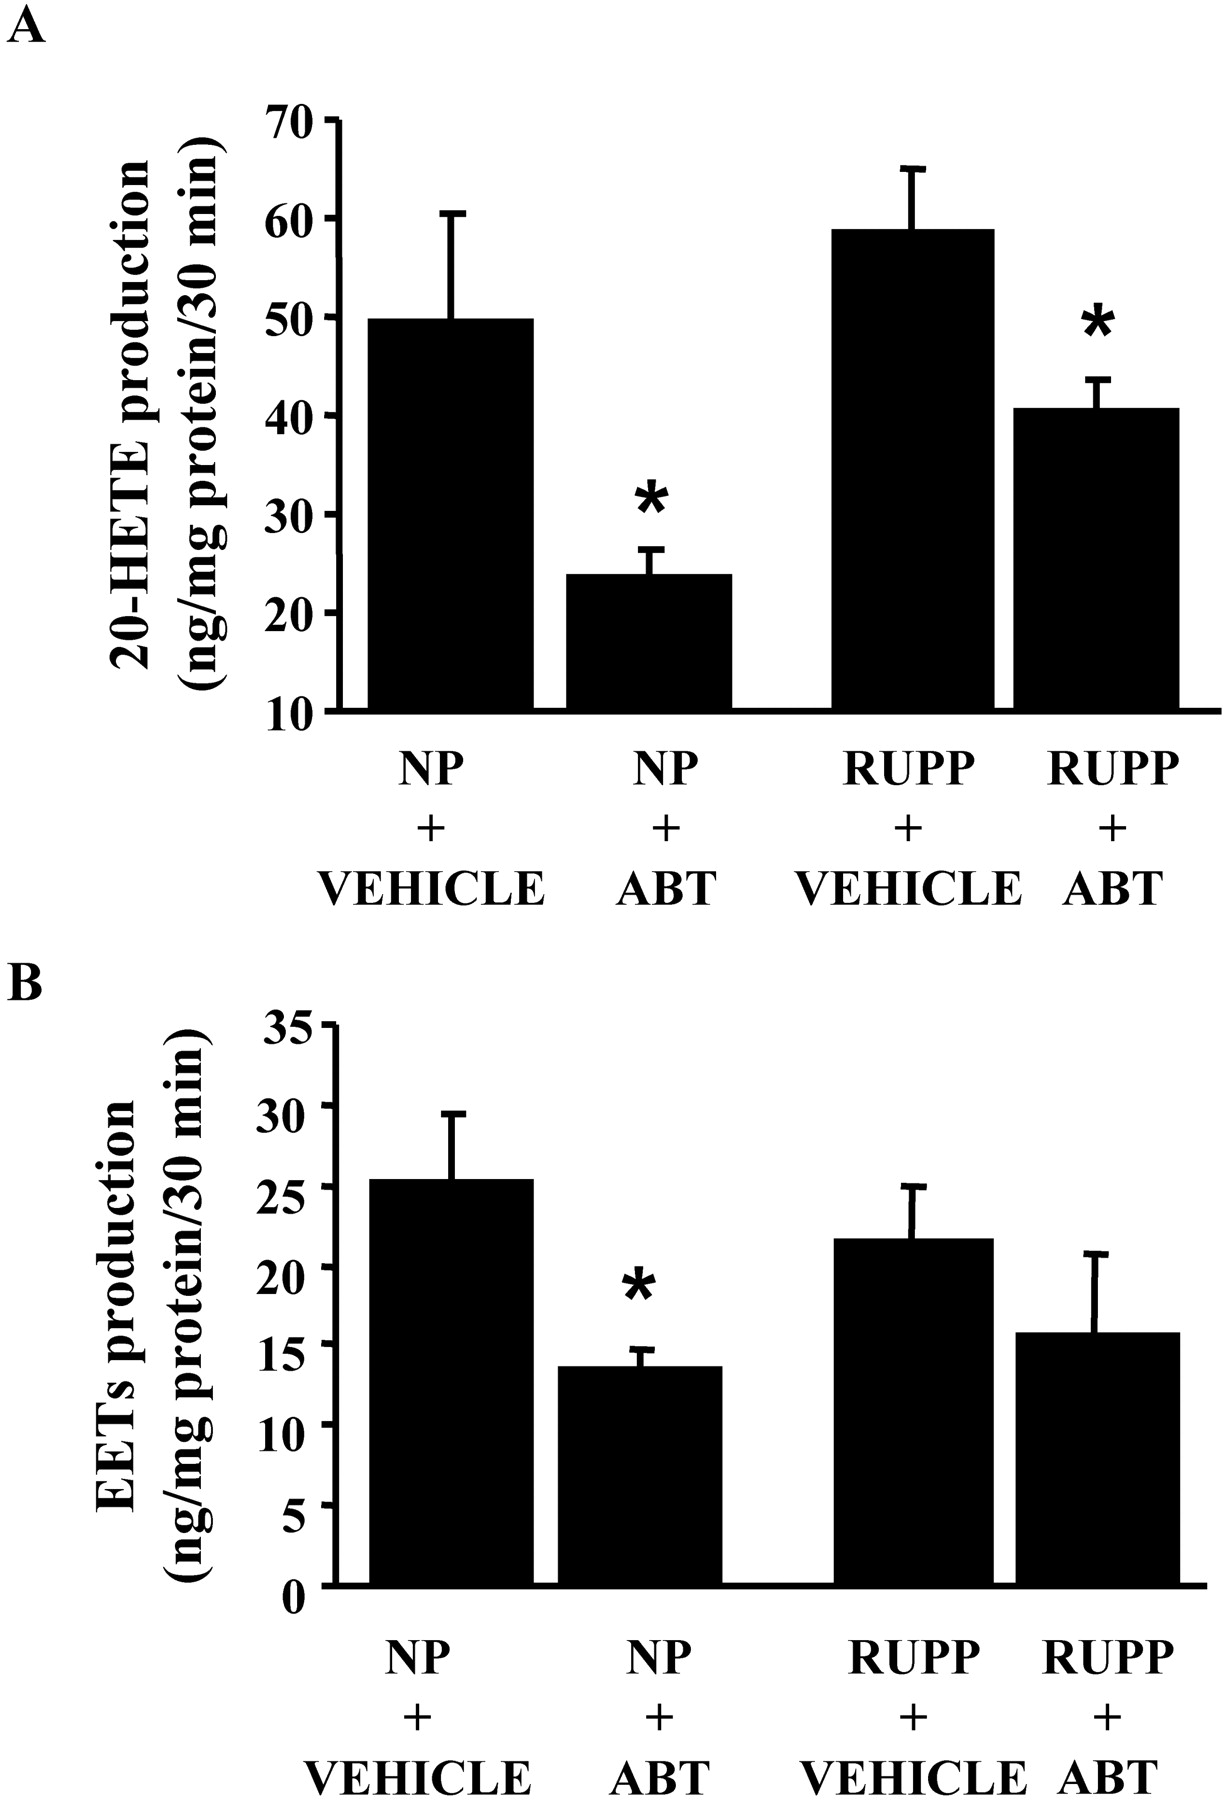 Cytochrome P-450 Inhibition Attenuates Hypertension Induced